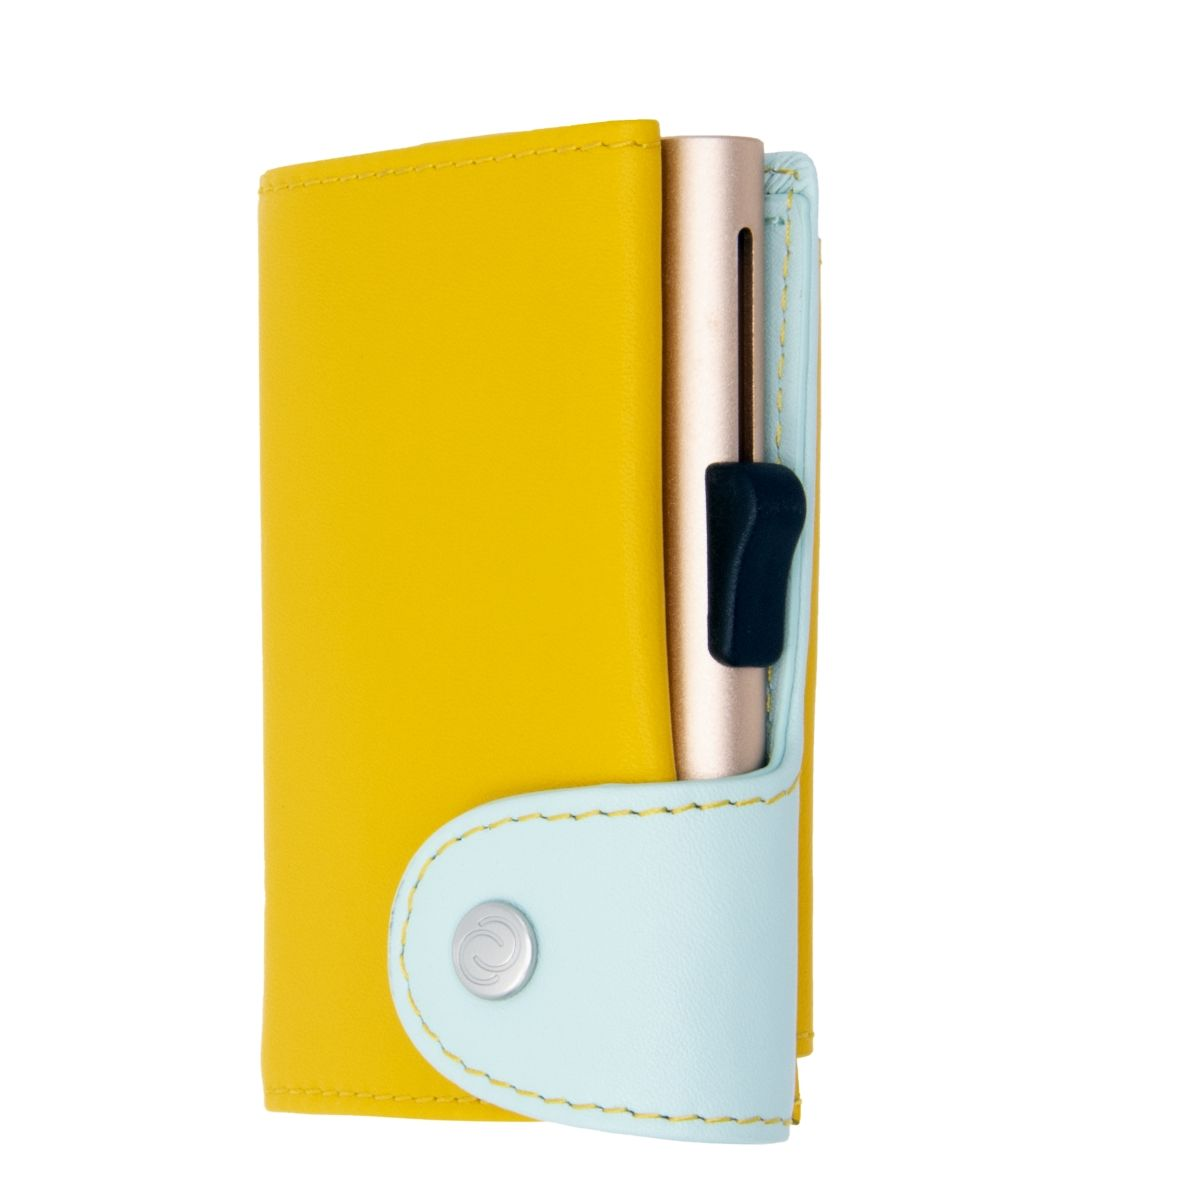 C-Secure XL Aluminum Wallet with Vegetable Genuine Leather and Coins Pocket - Saffron/Aqua